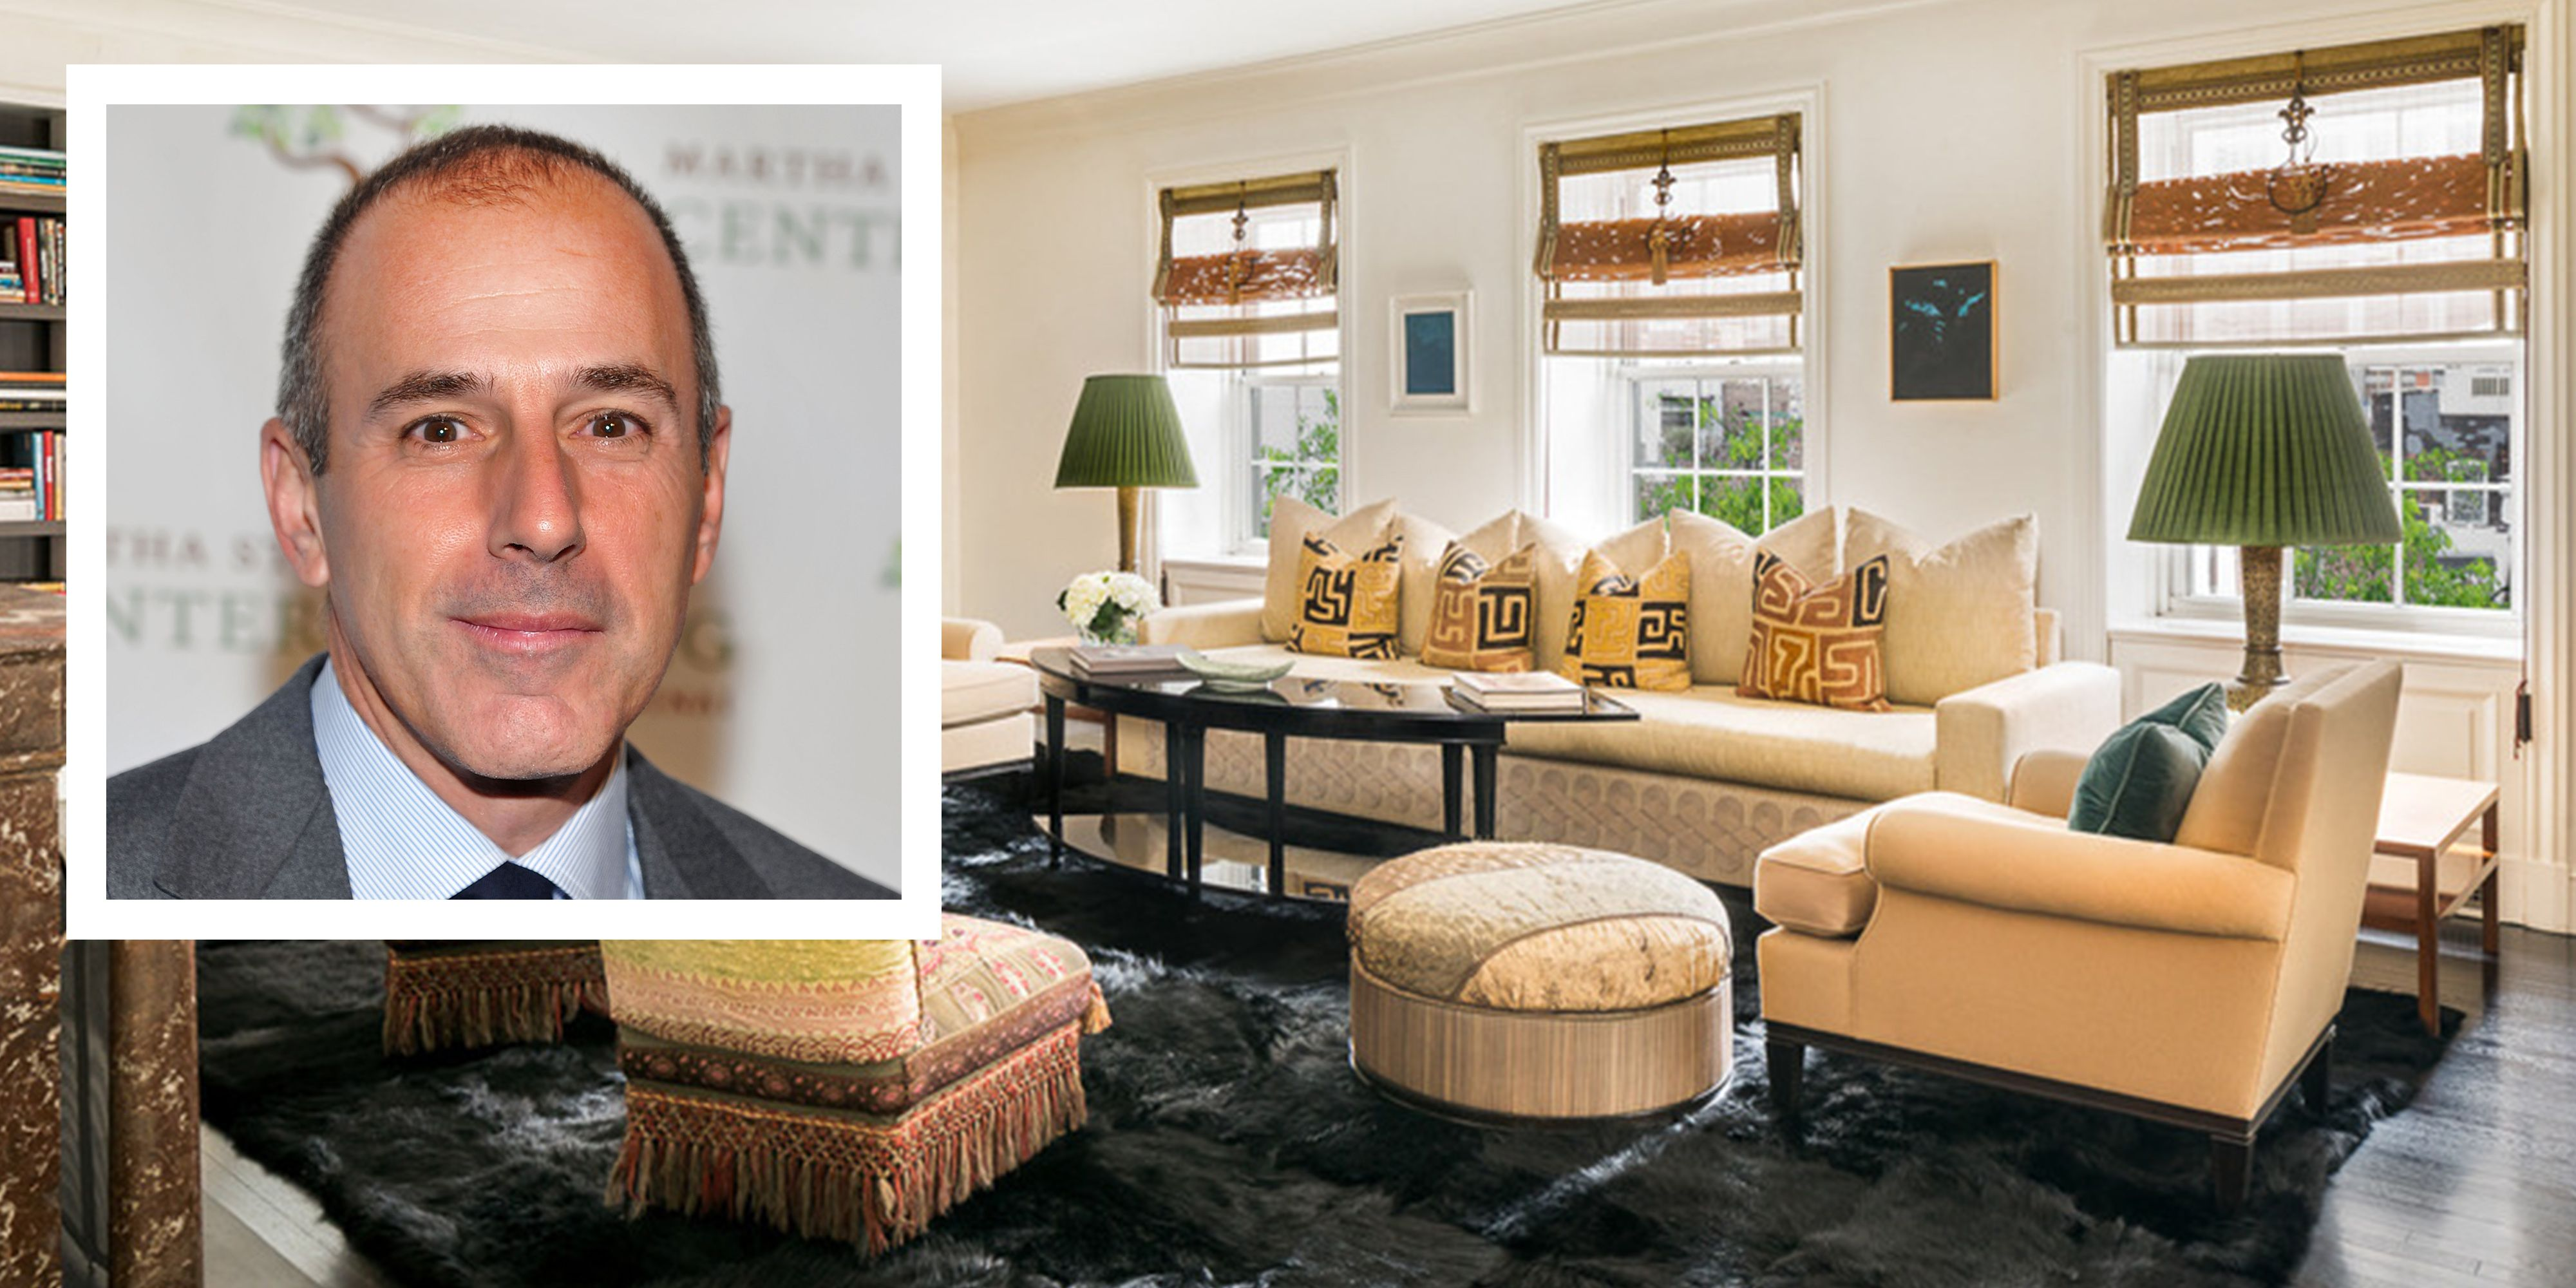 The Disgraced Today Anchor Listed The Upper East Side Pad For $7.35 Million.